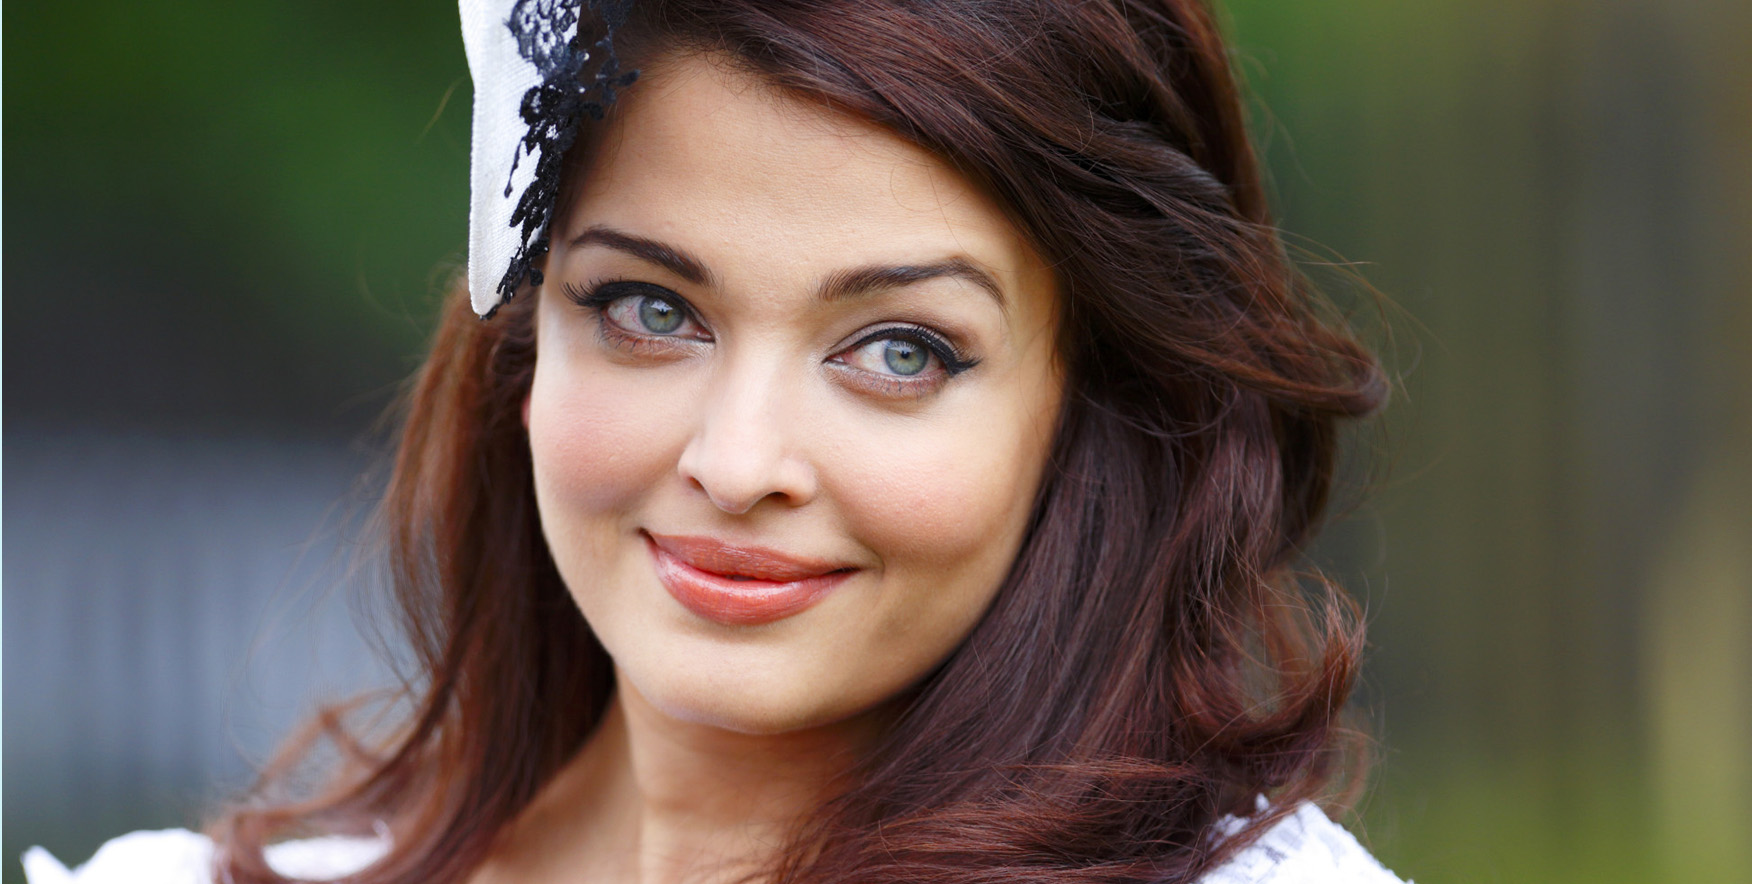 ASCOT, UNITED KINGDOM - JUNE 18: (EMBARGOED FOR PUBLICATION IN UK NEWSPAPERS UNTIL 48 HOURS AFTER CREATE DATE AND TIME) Aishwarya Rai attends Day 1 of Royal Ascot at Ascot Racecourse on June 18, 2013 in Ascot, England. (Photo by Max Mumby/Indigo/Getty Images)